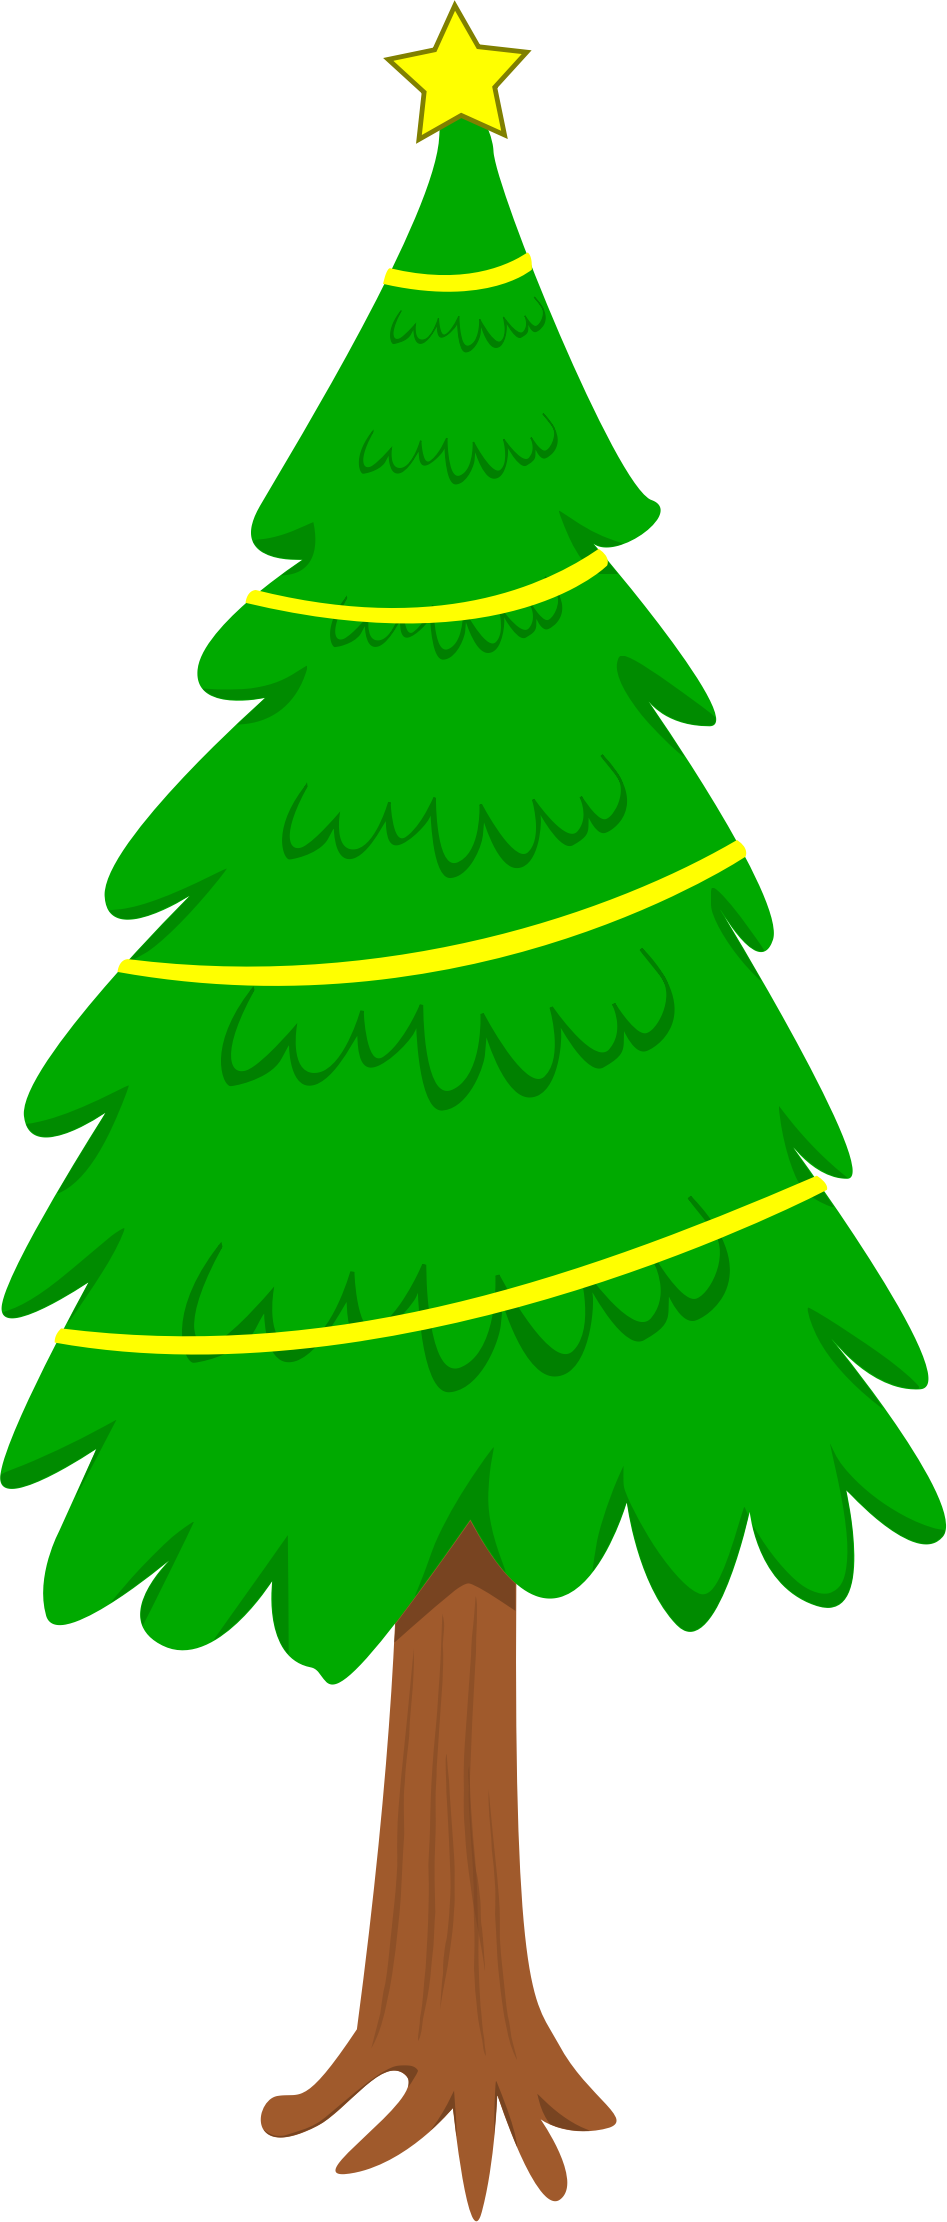 Christmas tree clipart simple clipart royalty free download Clipart - Christmas Tree clipart royalty free download